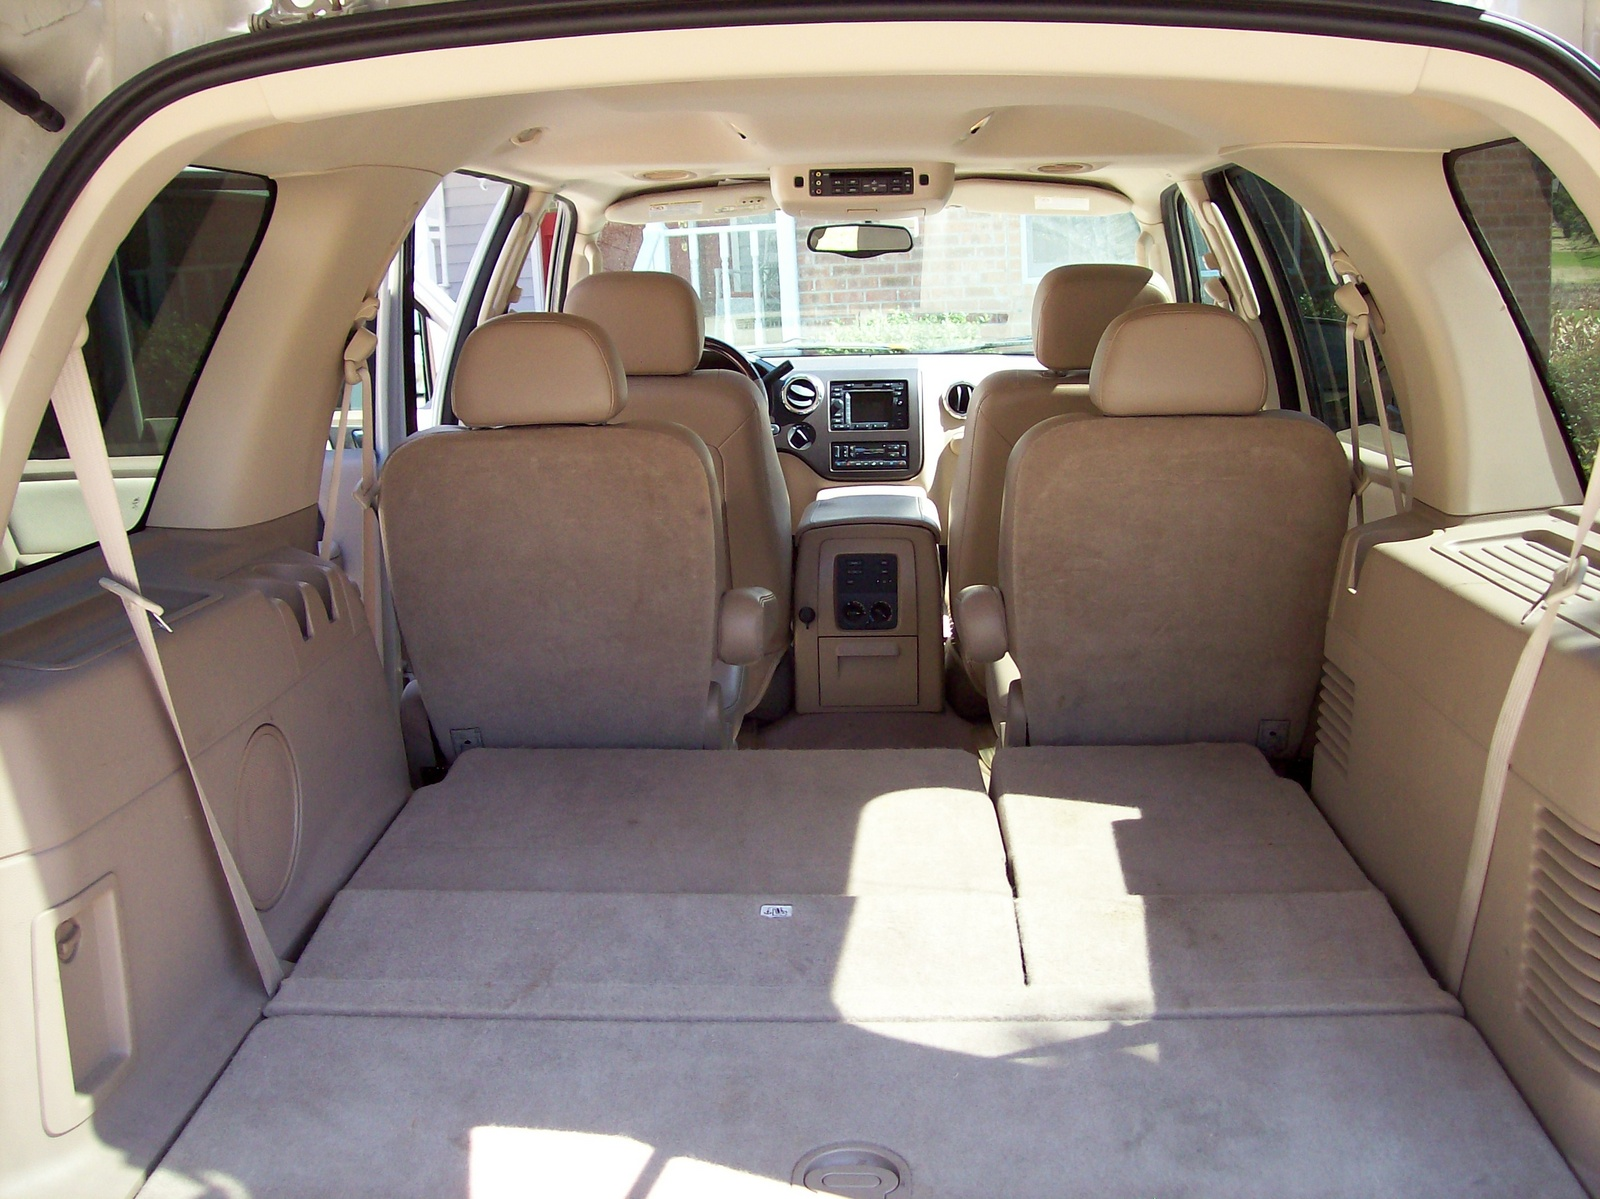 2005 Ford Expedition Interior Colors